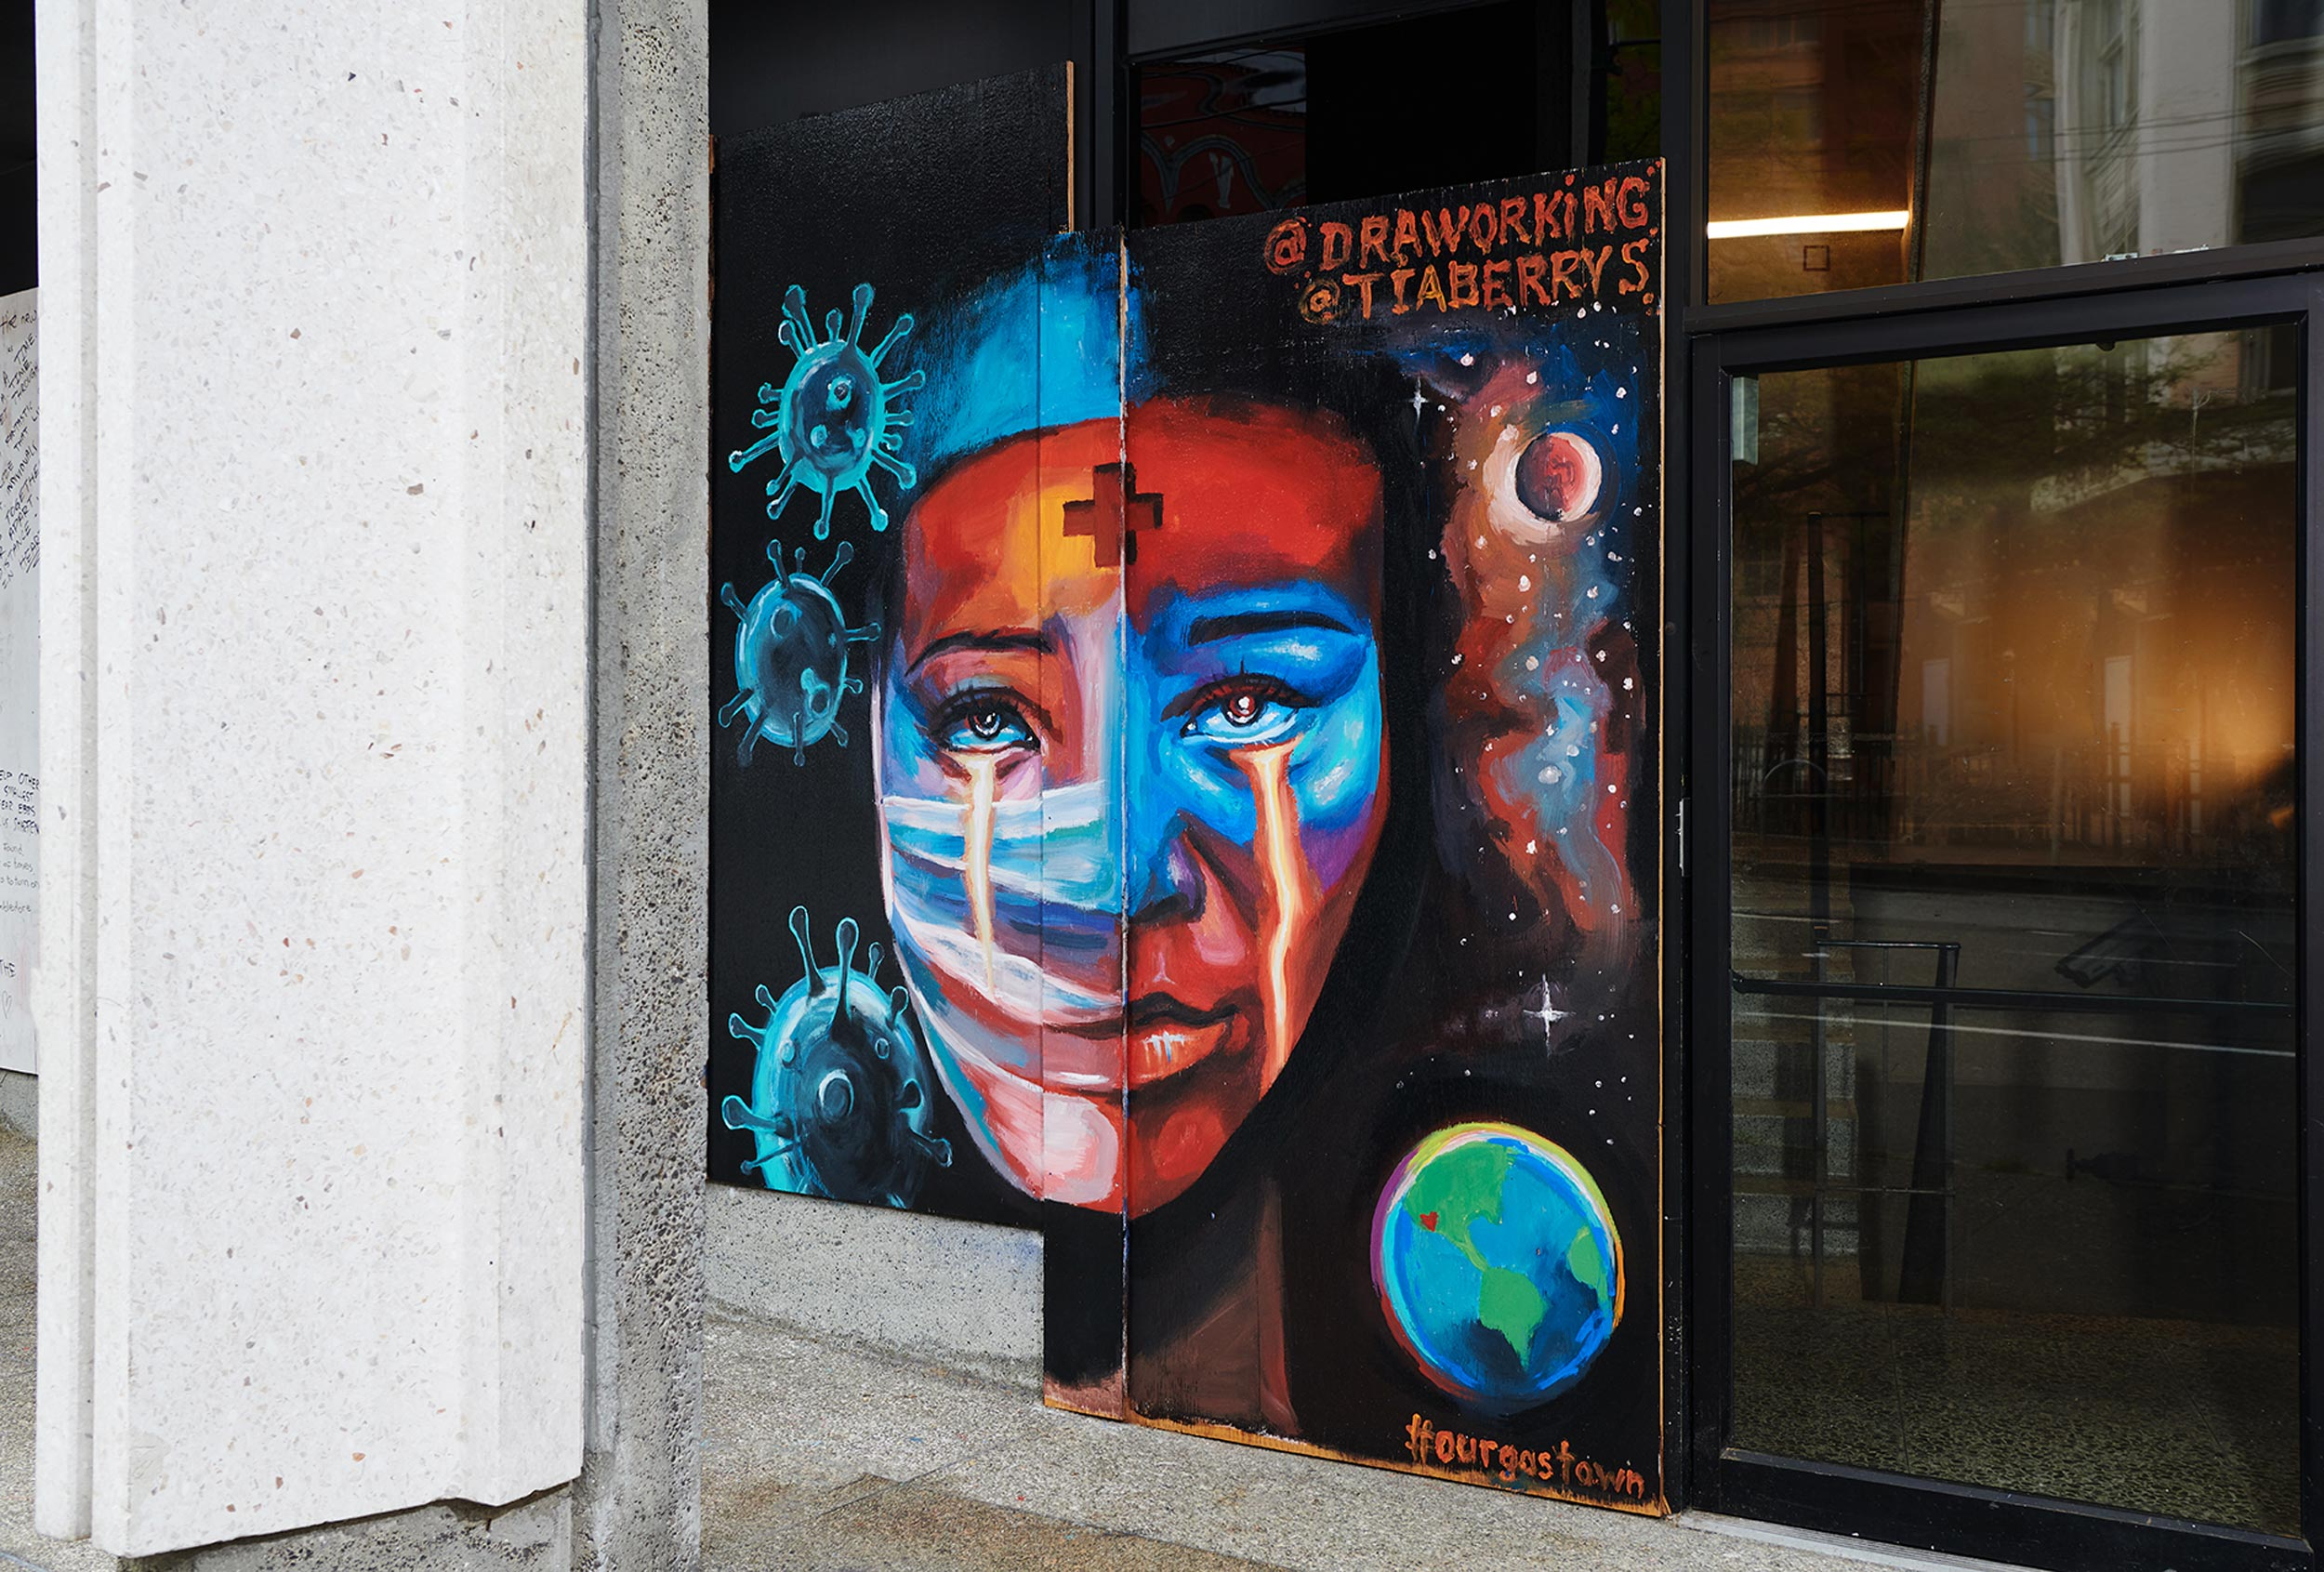 2020-Pandemic-Murals-of-Gratitude-Gastown-Vancouver-Art-Personal-Project-Erich-Saide-Photographer-Artists-Tia-Berry-Andrei-Draworking